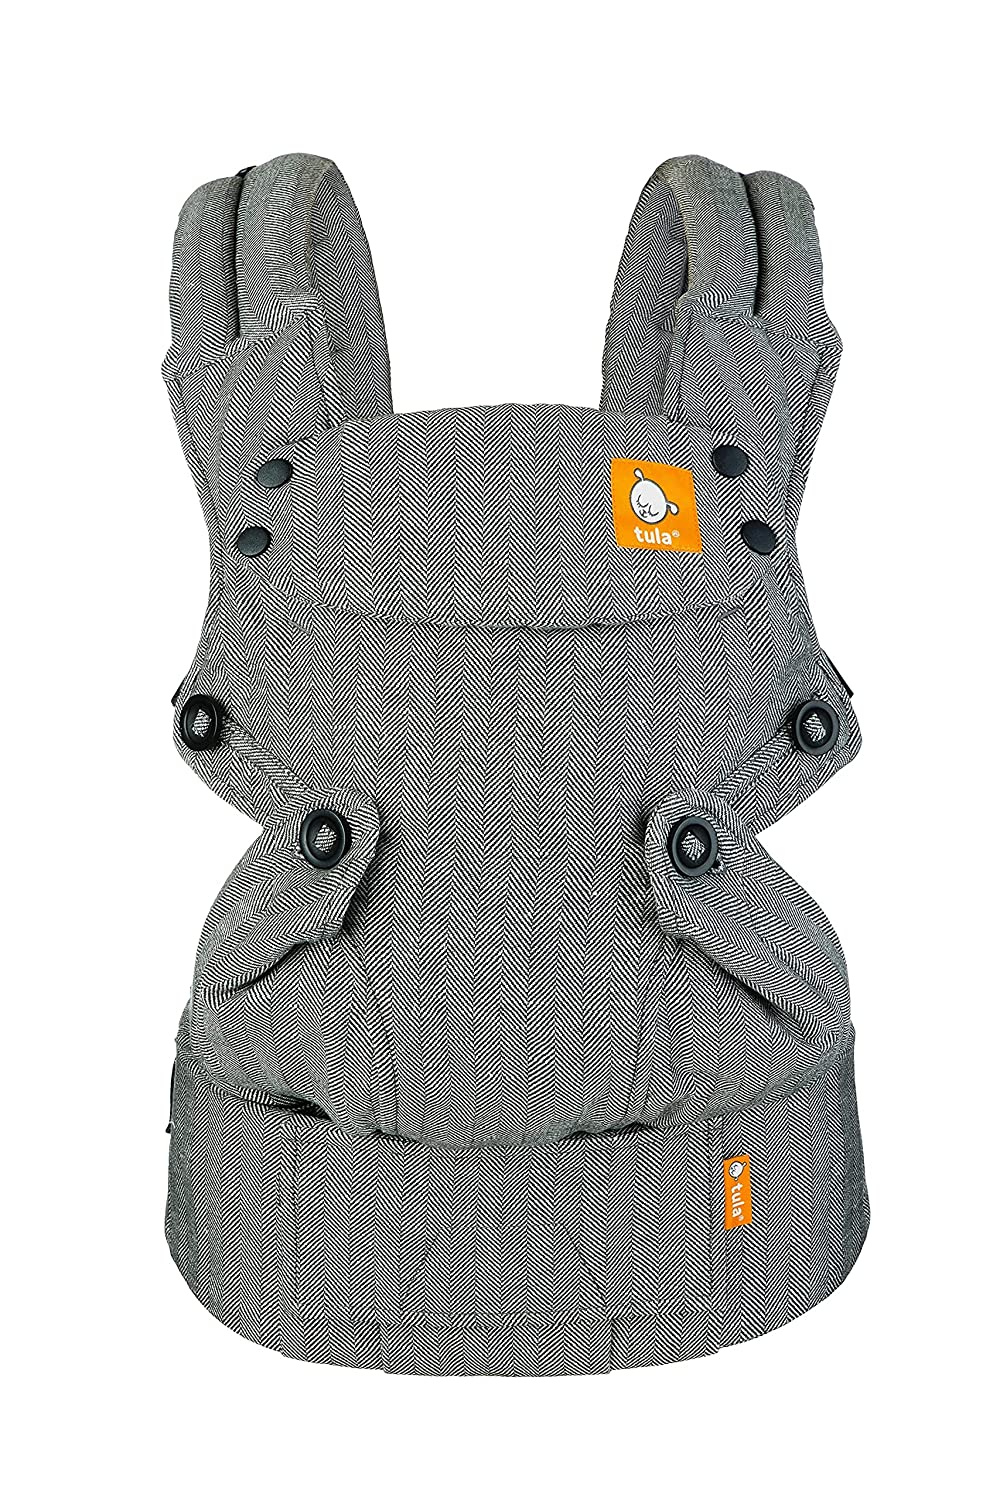 Baby Tula Explore Baby Carrier, Adjustable Newborn to Toddler Carrier, Ergonomic and Multiple Positions for 7 – 45 pounds (Linen Ash)